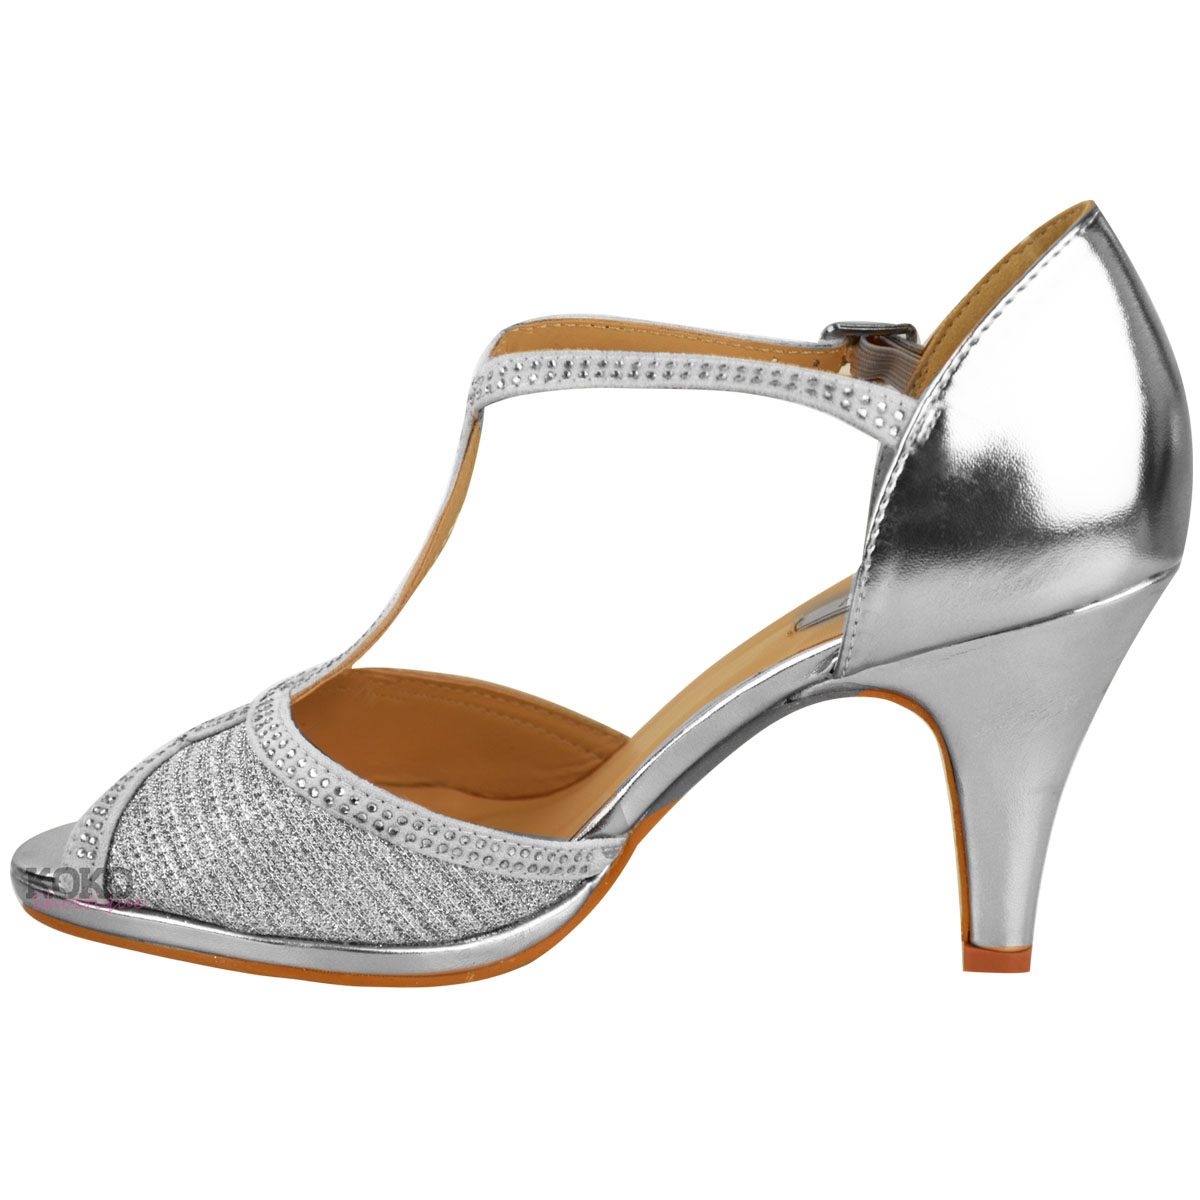 Details about Womens Ladies Wedding Bridal Shoes Prom High Heel Diamante Party Sandals Size